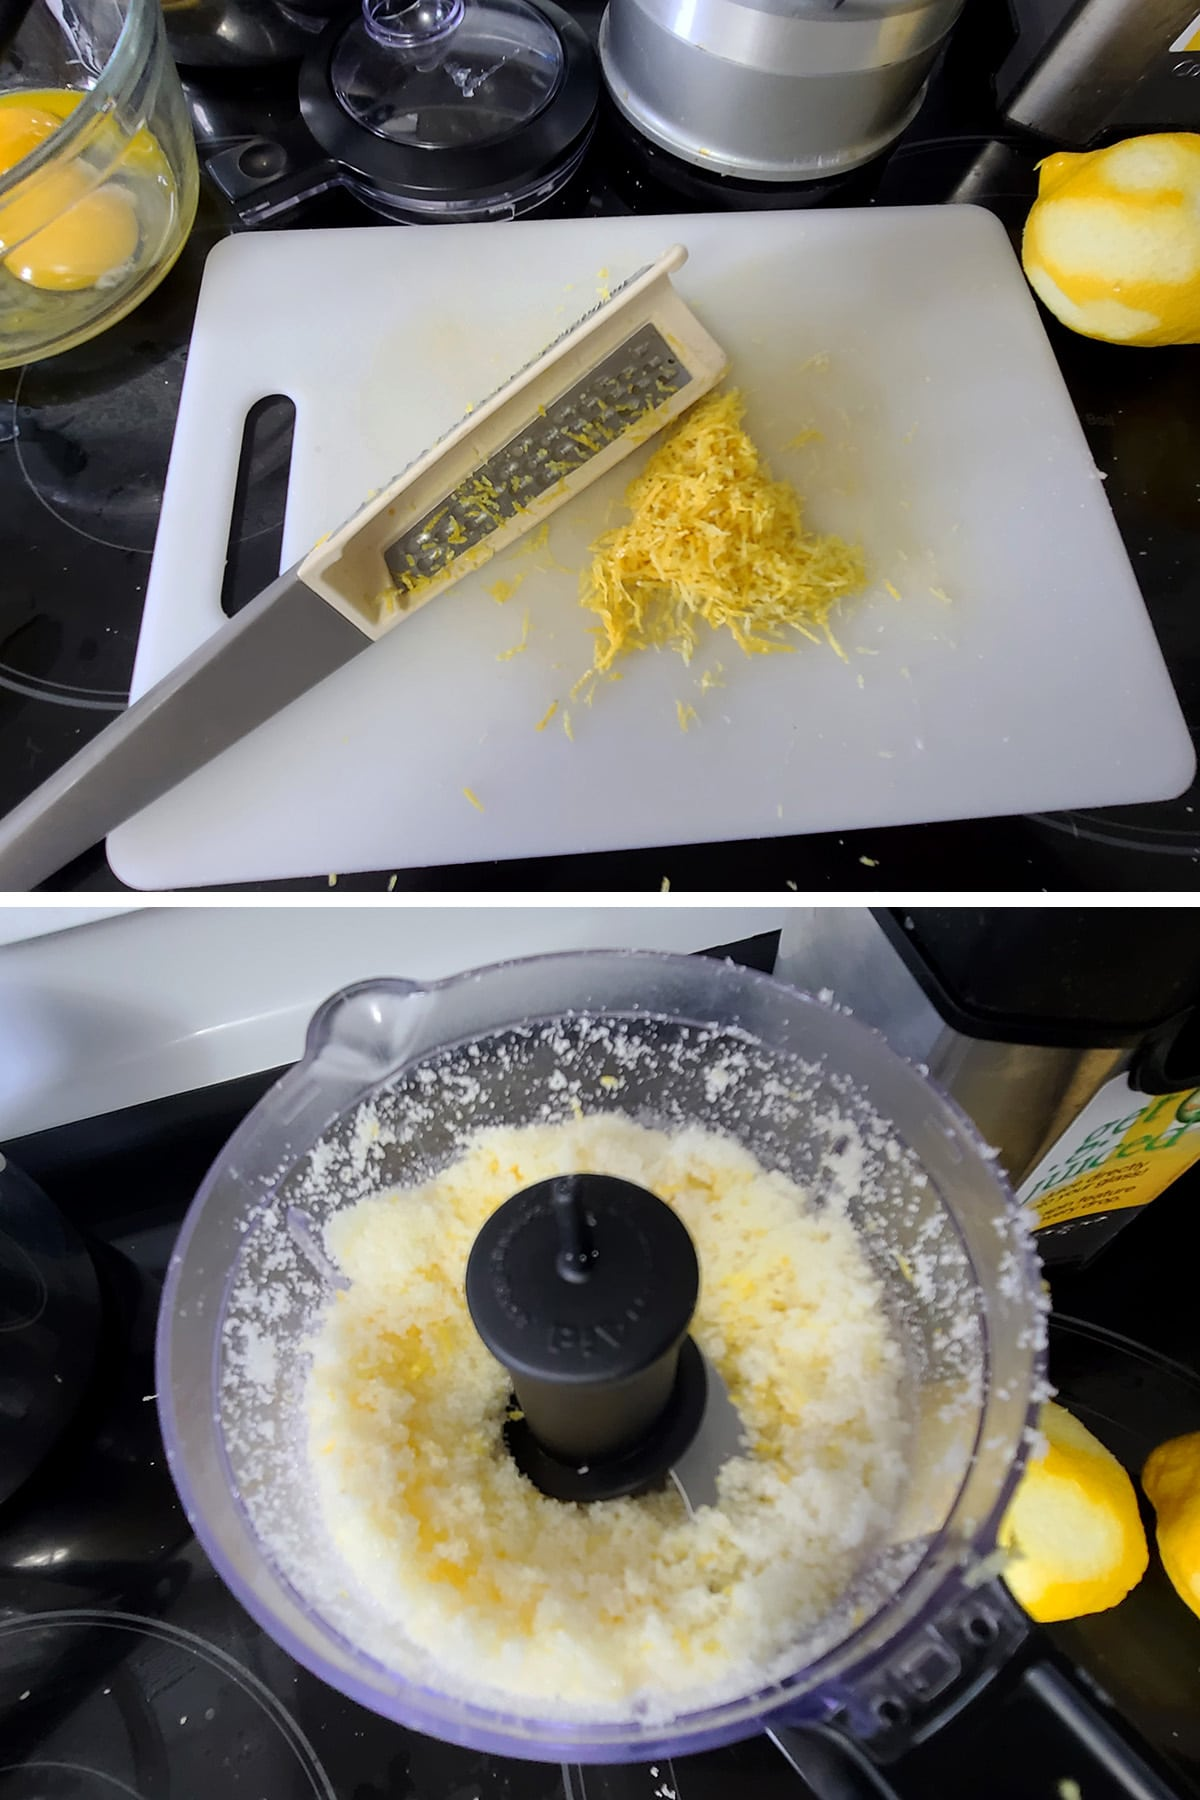 Lemon zest on a cutting board, and a mini food processor with sugar and lemon zest in it.